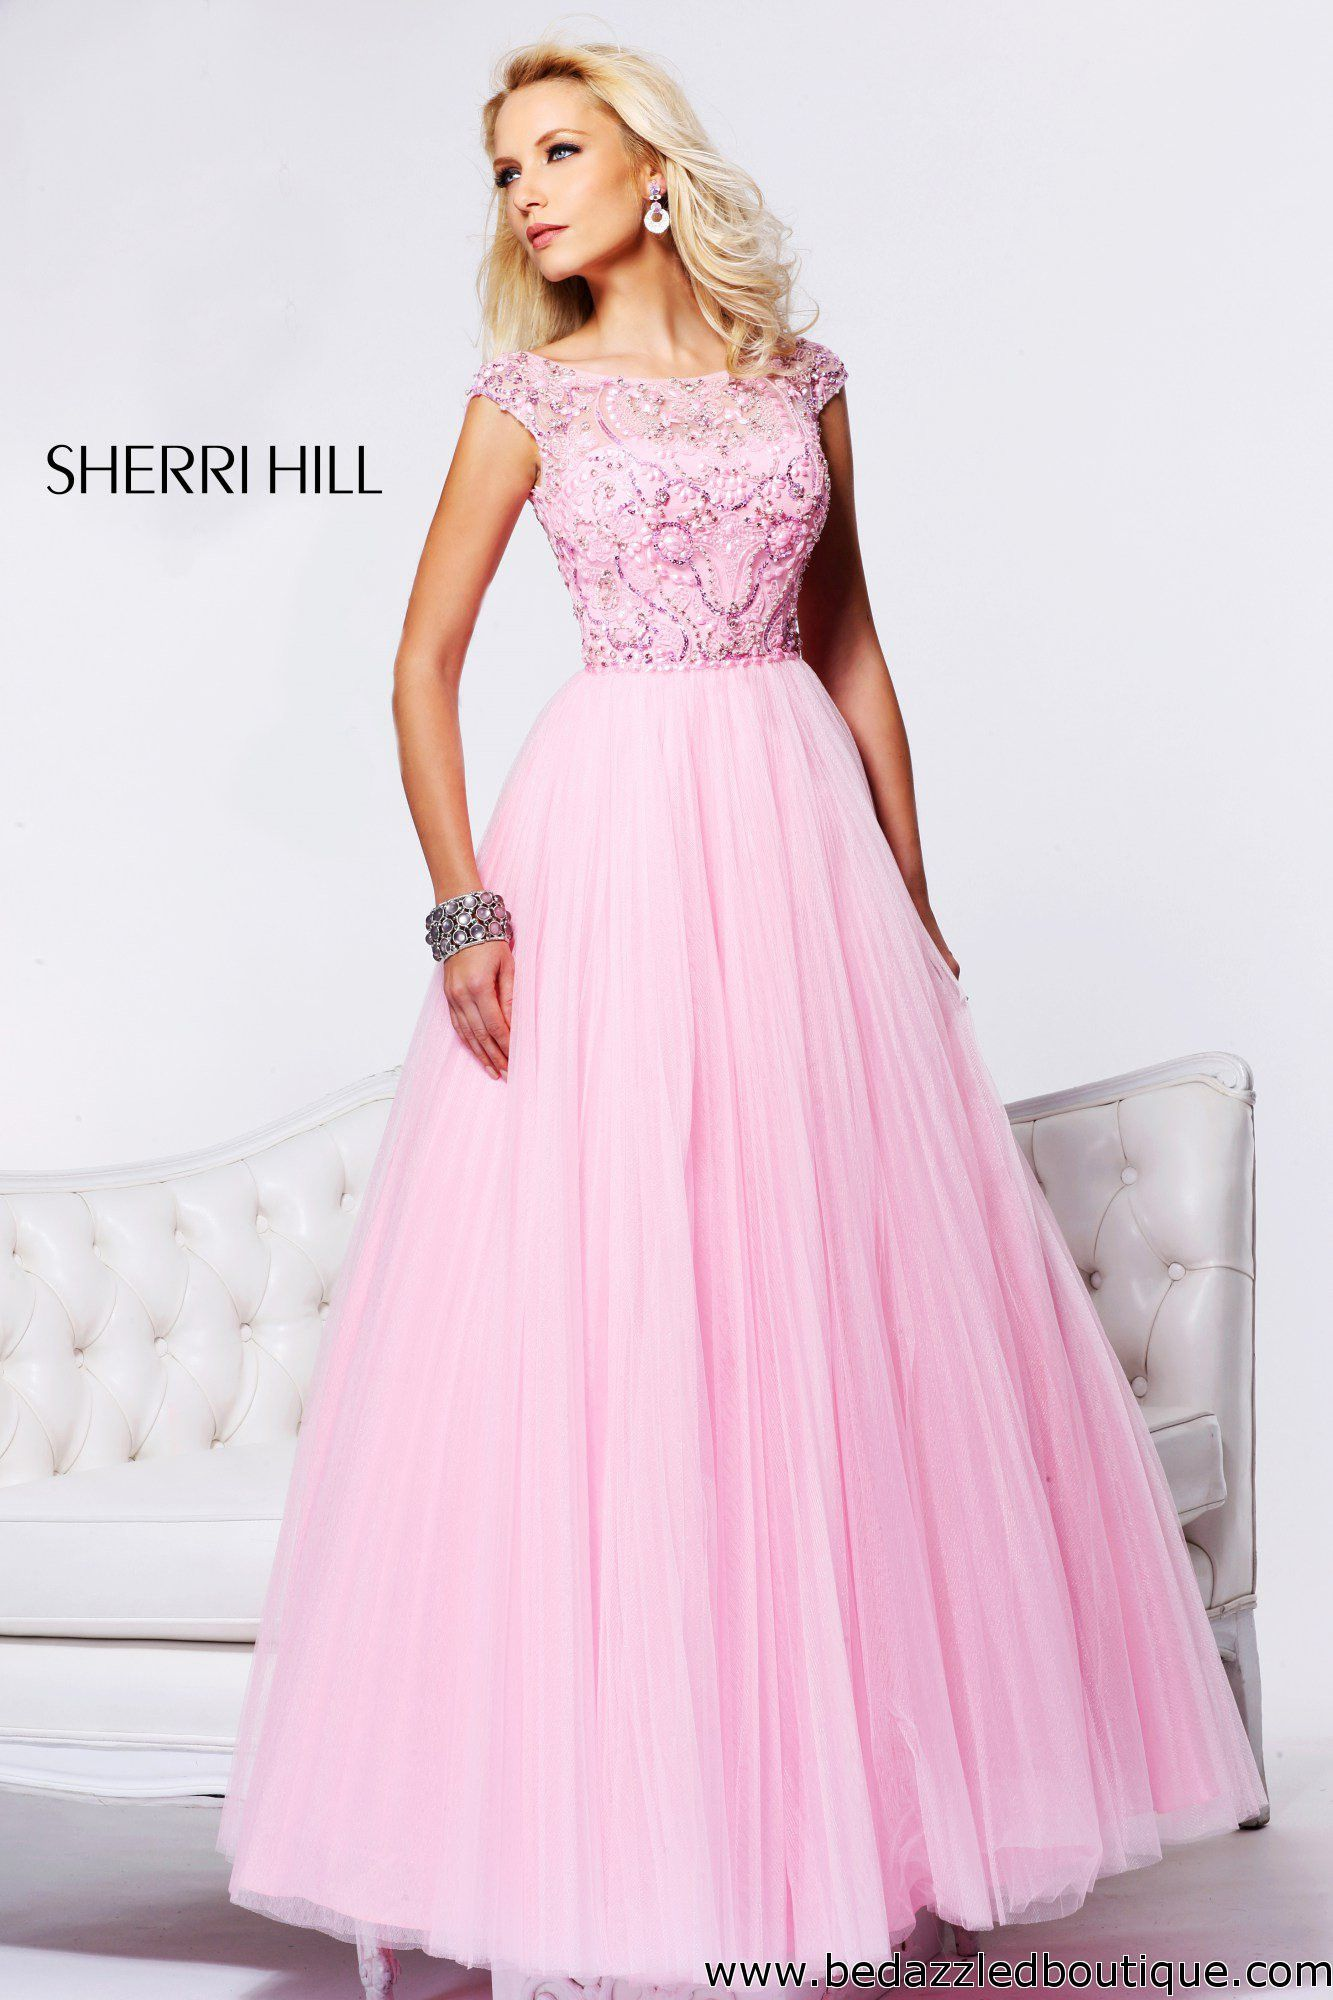 Sherri Hill 21151 | Wedding dresses | Pinterest | Baile de ...